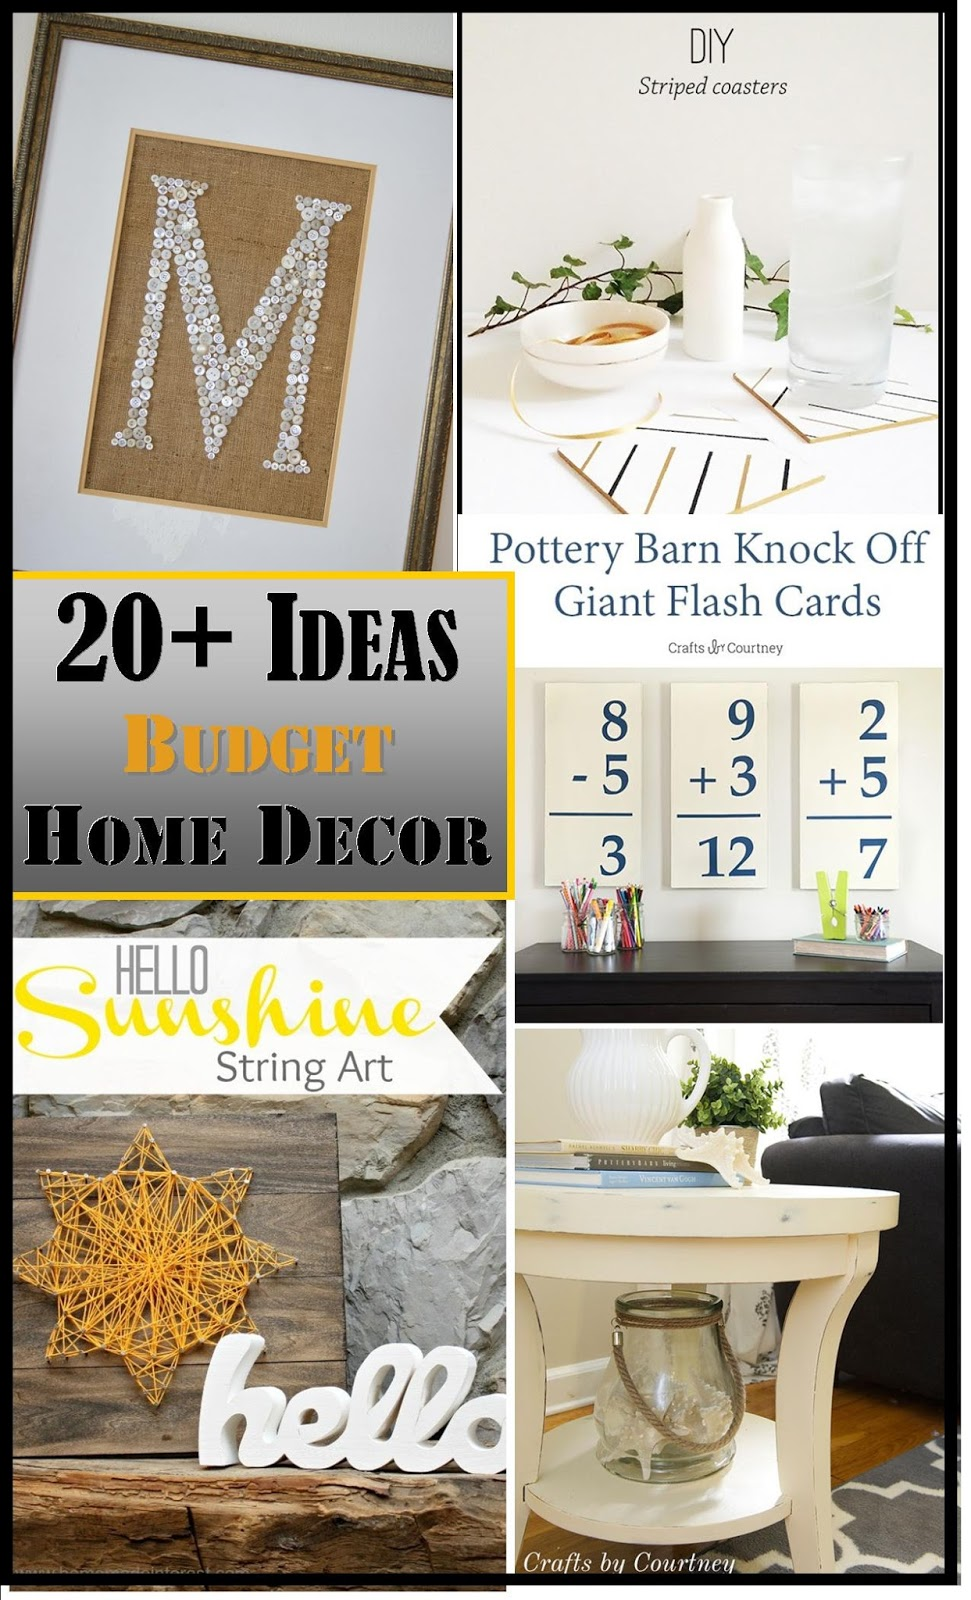 Decorating on a budget ideas plus the creative exchange - Home decor on a budget ...